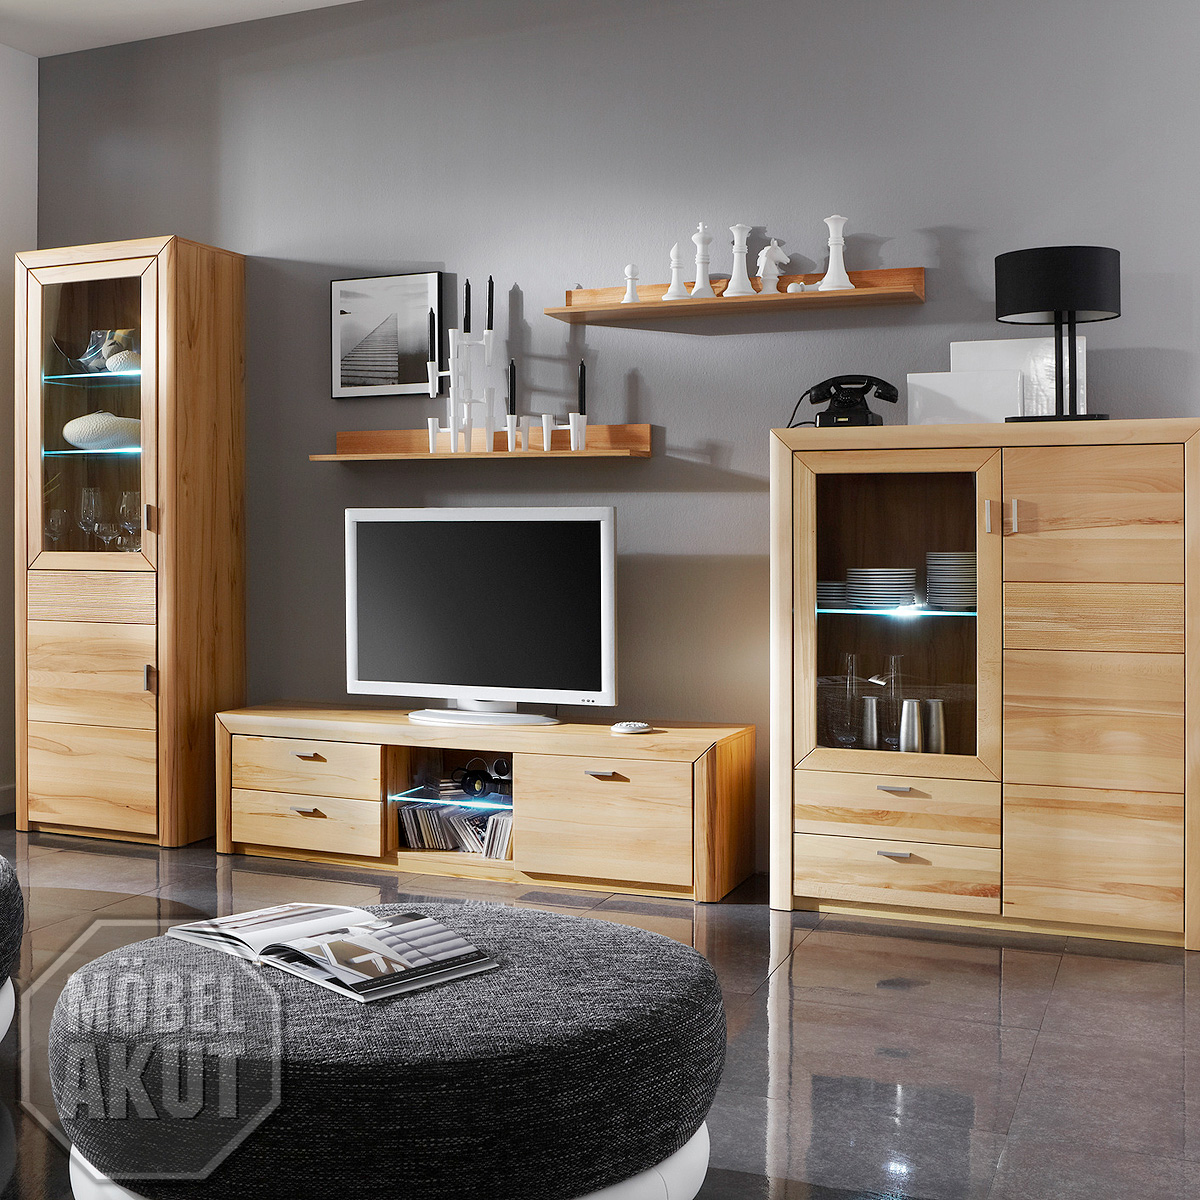 wohnwand passepartout wohnzimmer in kernbuche massiv ebay. Black Bedroom Furniture Sets. Home Design Ideas